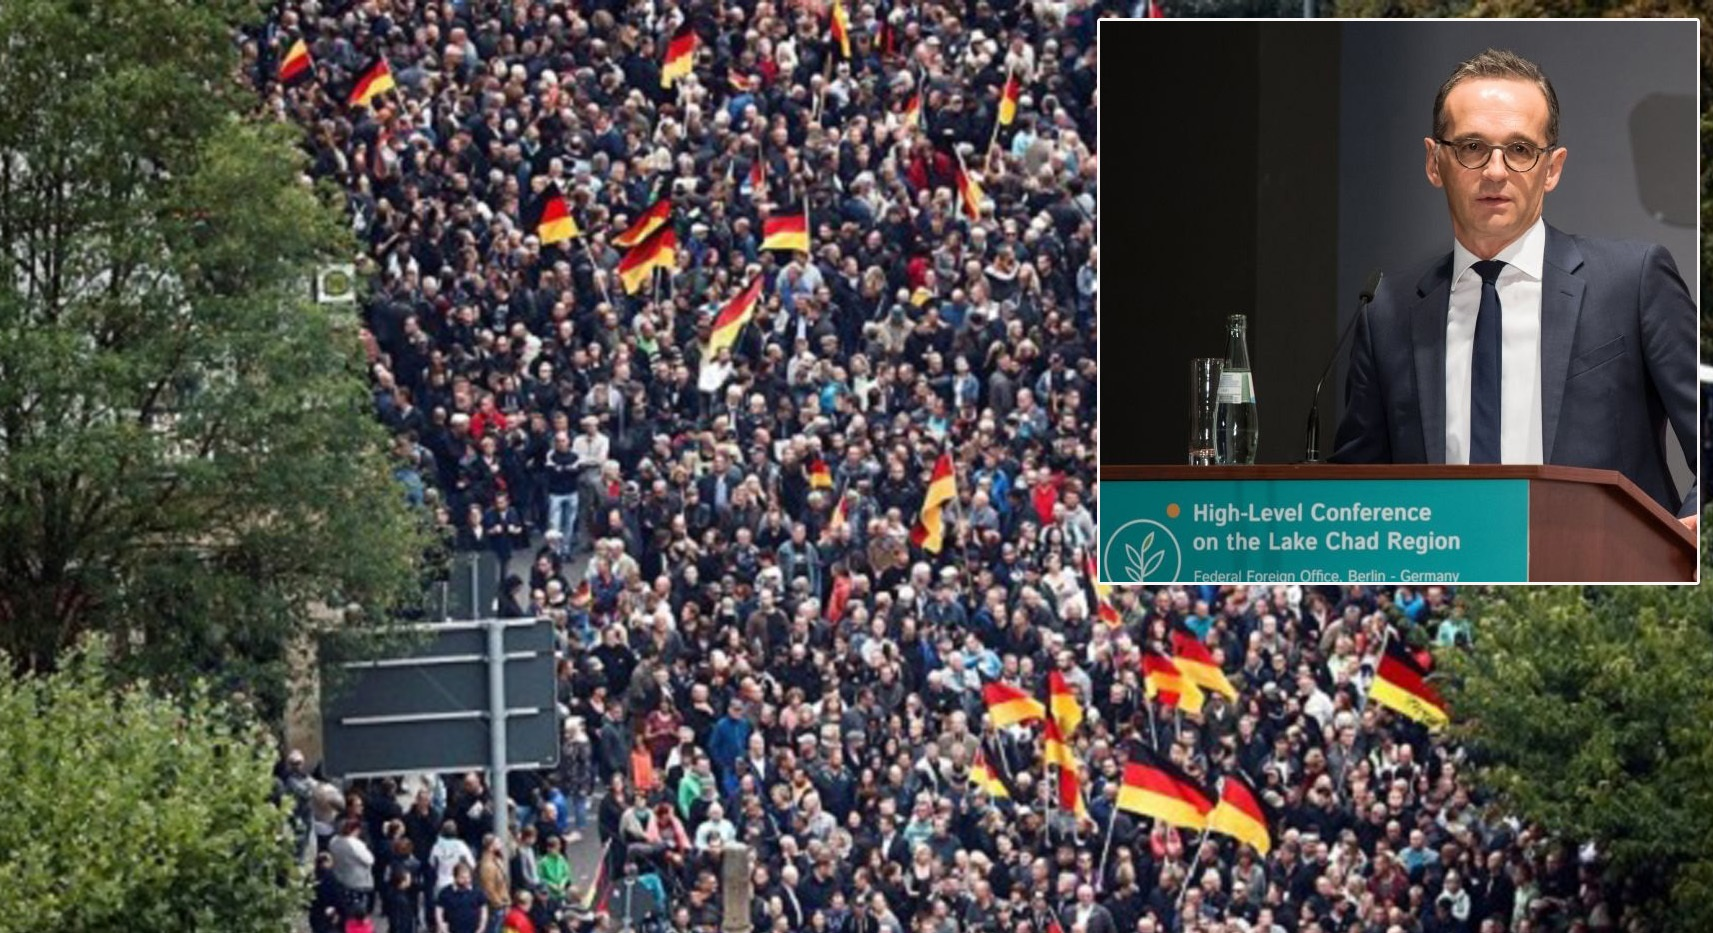 Riots in Germany: Chemnitz declares emergency after liberals clash with right-wing rallies protesting fatal stabbing of local by migrants